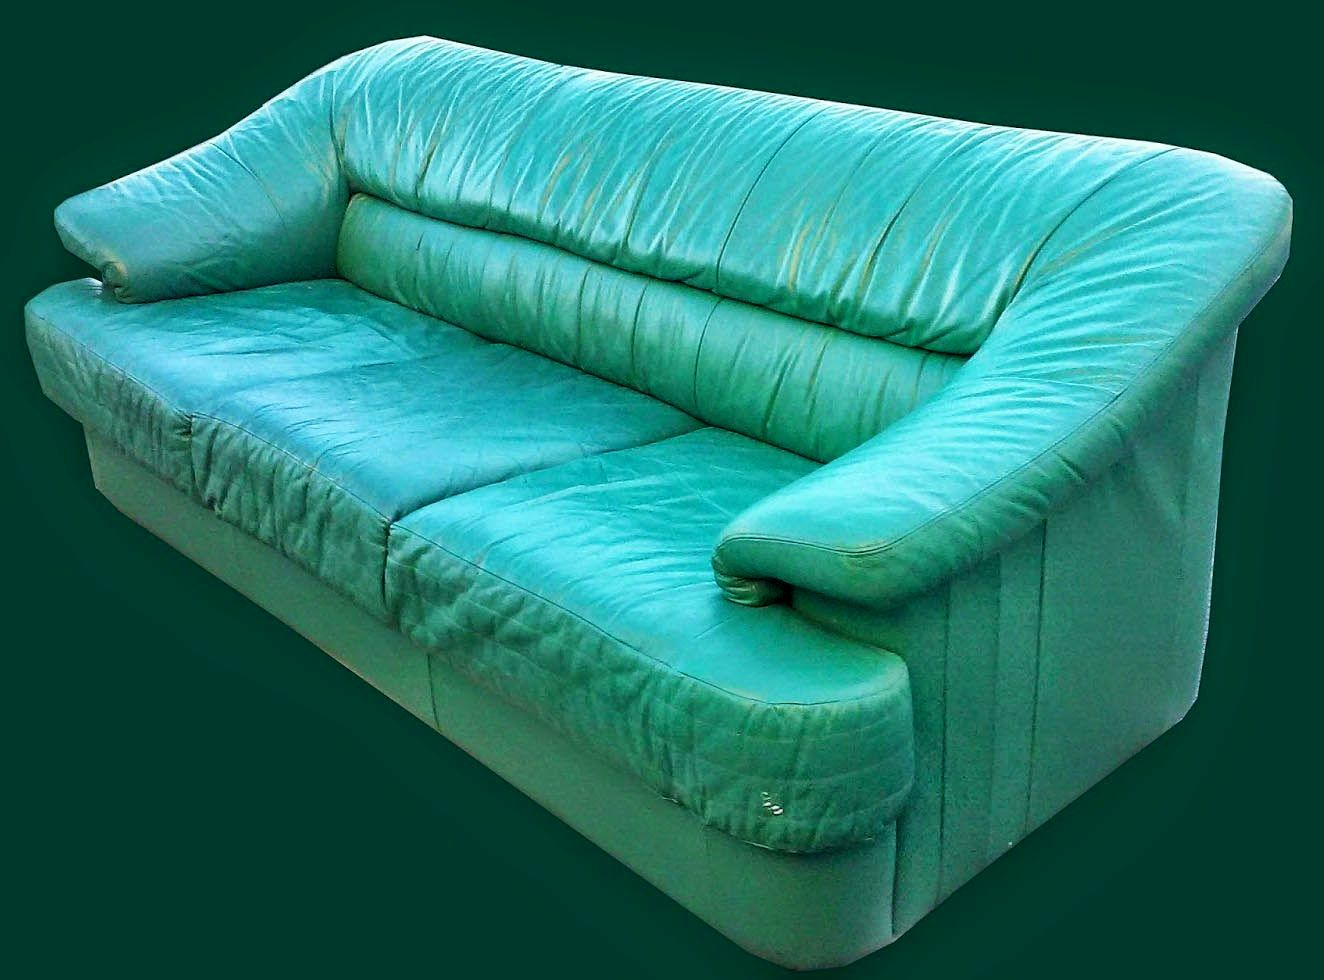 amazing teal sofas for sale image-Modern Teal sofas for Sale Decoration